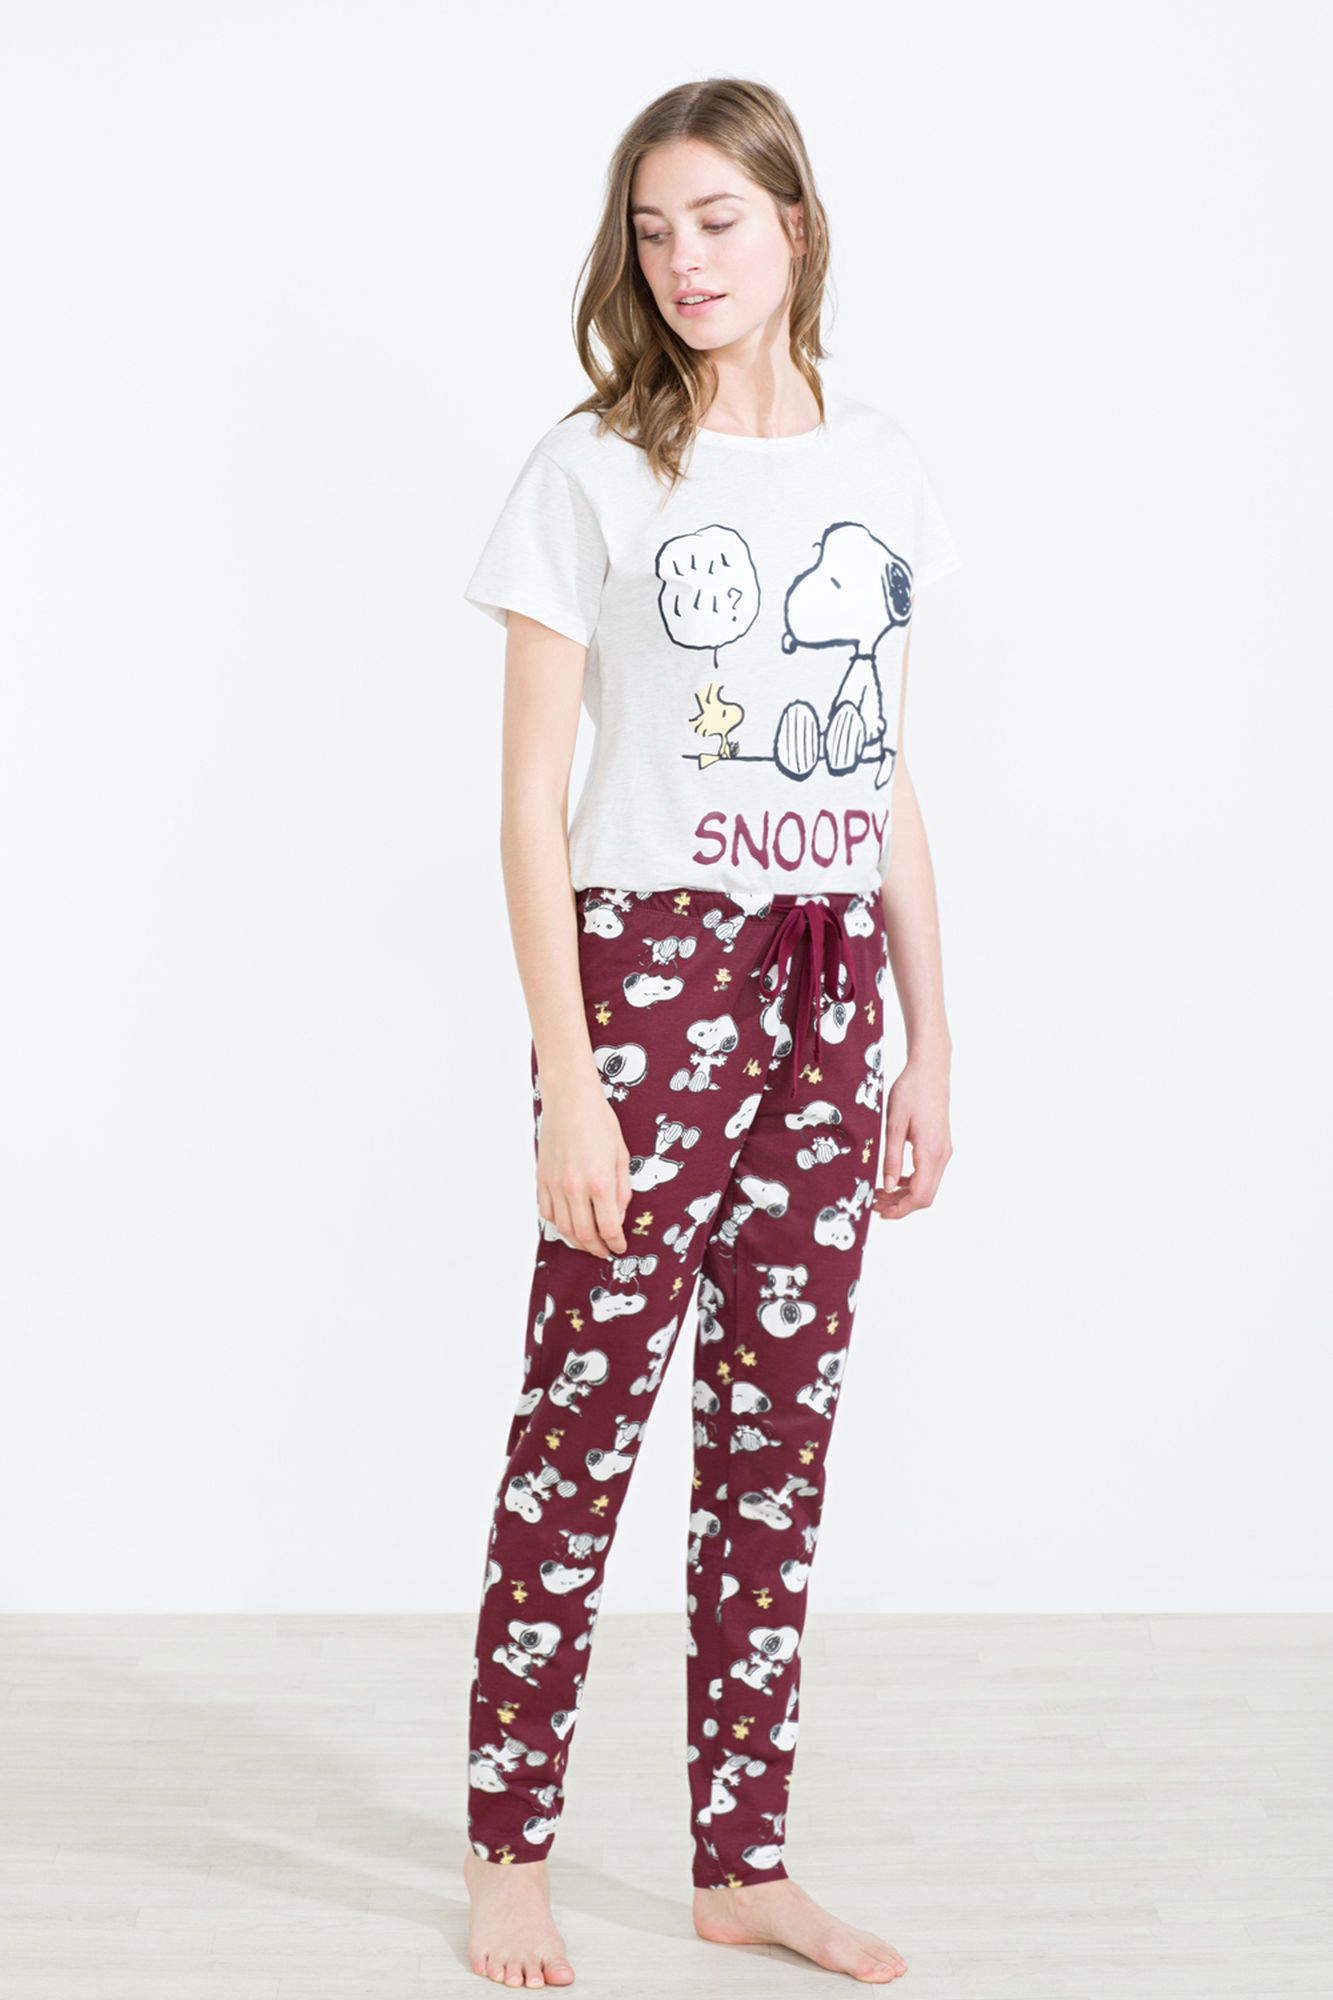 Soft cotton pyjama set including a long sleeve t-shirt with Snoopy and  Woodstock graphic on the front 89766fdfb368